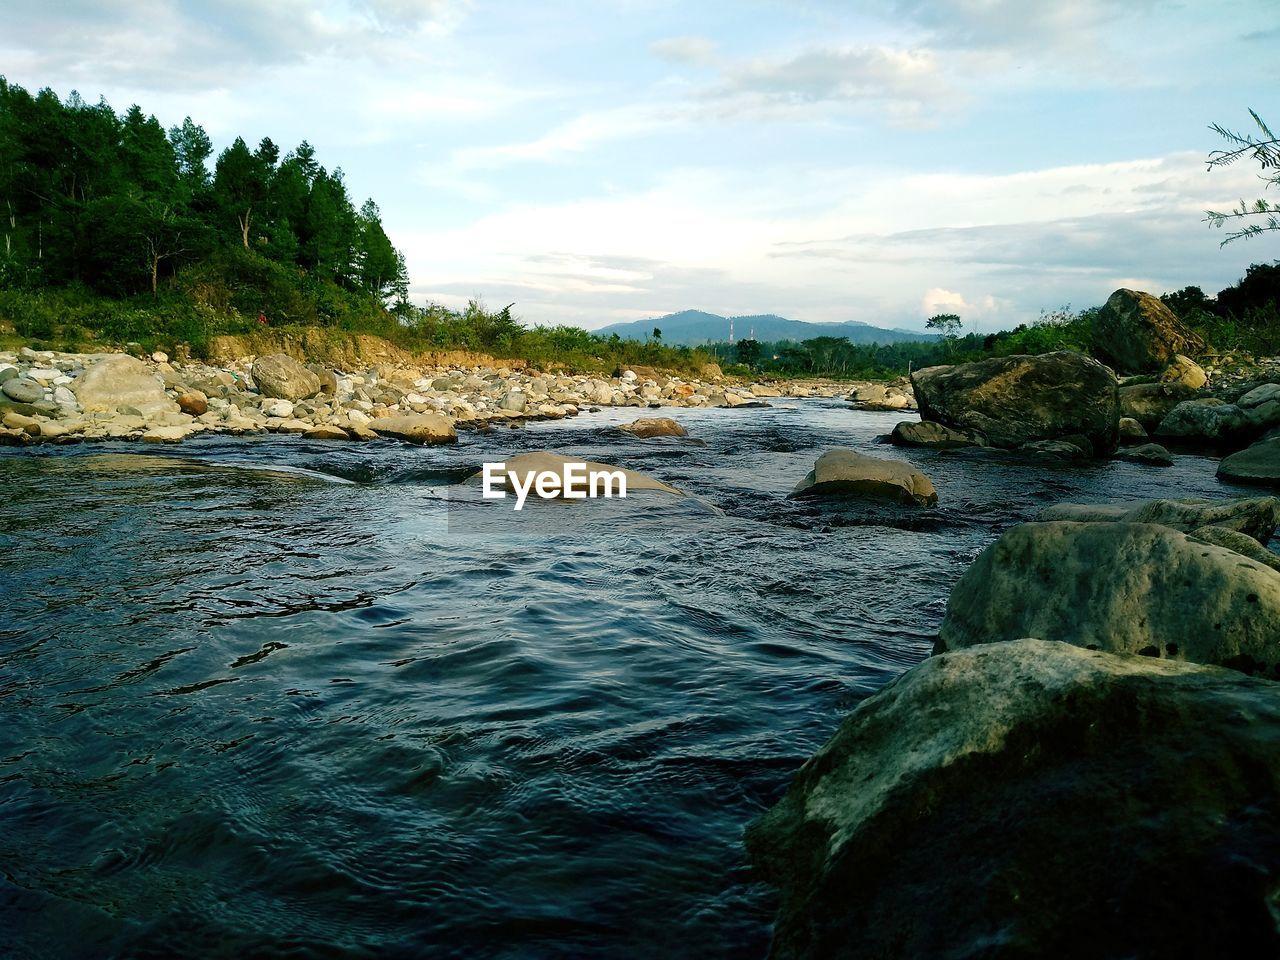 water, sky, rock, cloud - sky, scenics - nature, beauty in nature, solid, rock - object, tranquility, nature, tranquil scene, river, no people, plant, tree, day, flowing water, waterfront, motion, outdoors, flowing